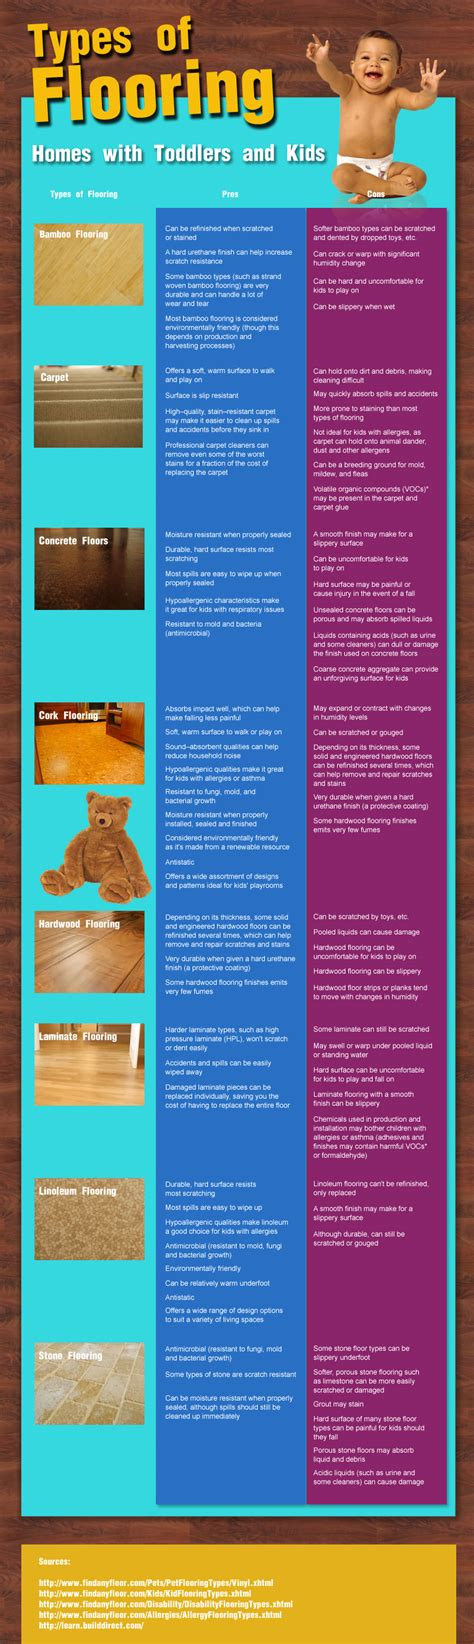 types of flooring homes with toddlers and